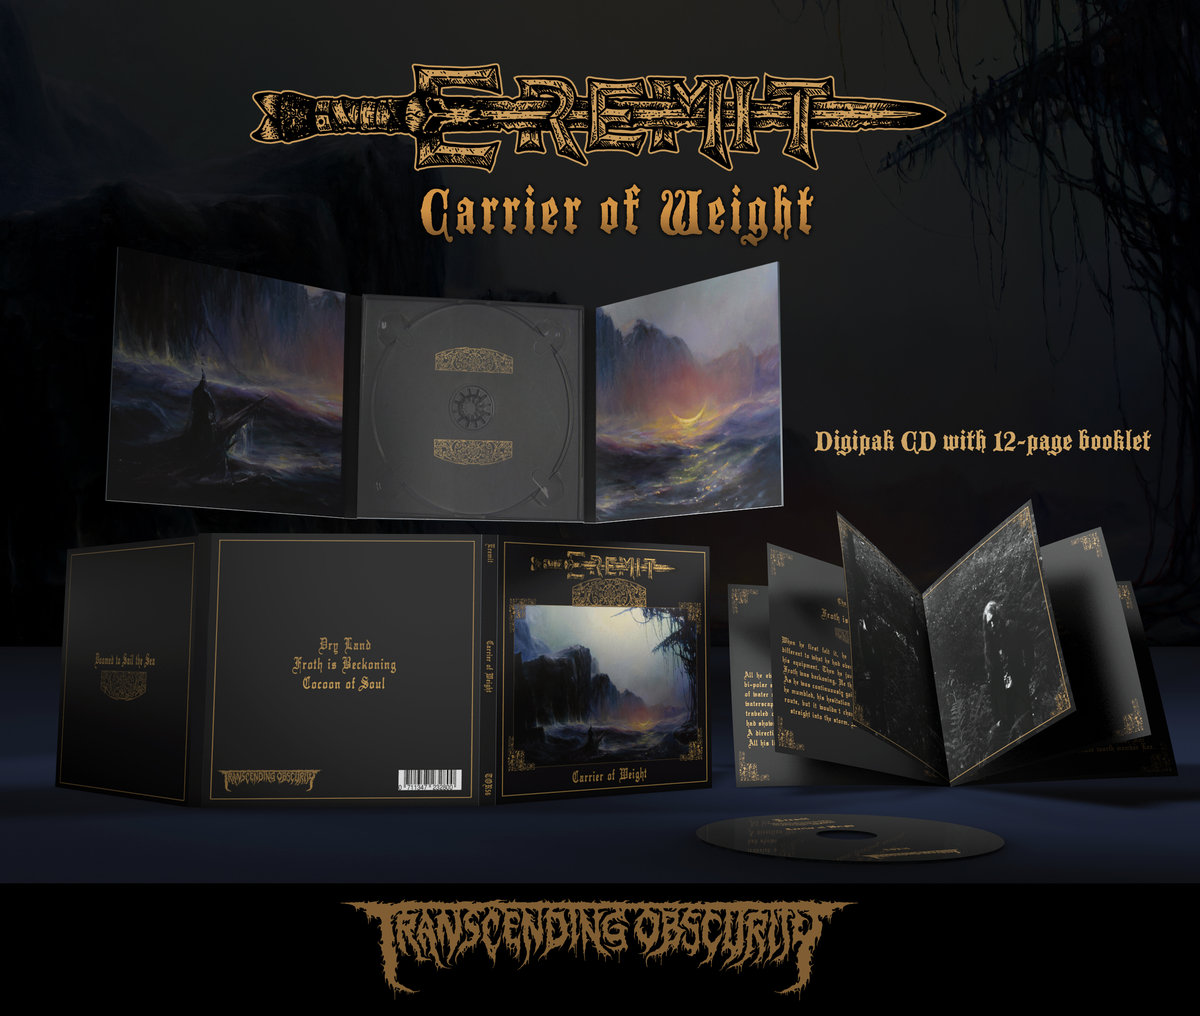 EREMIT (Germany) - 'Carrier of Weight' Digipak CD with 12-page booklet in matt varnish